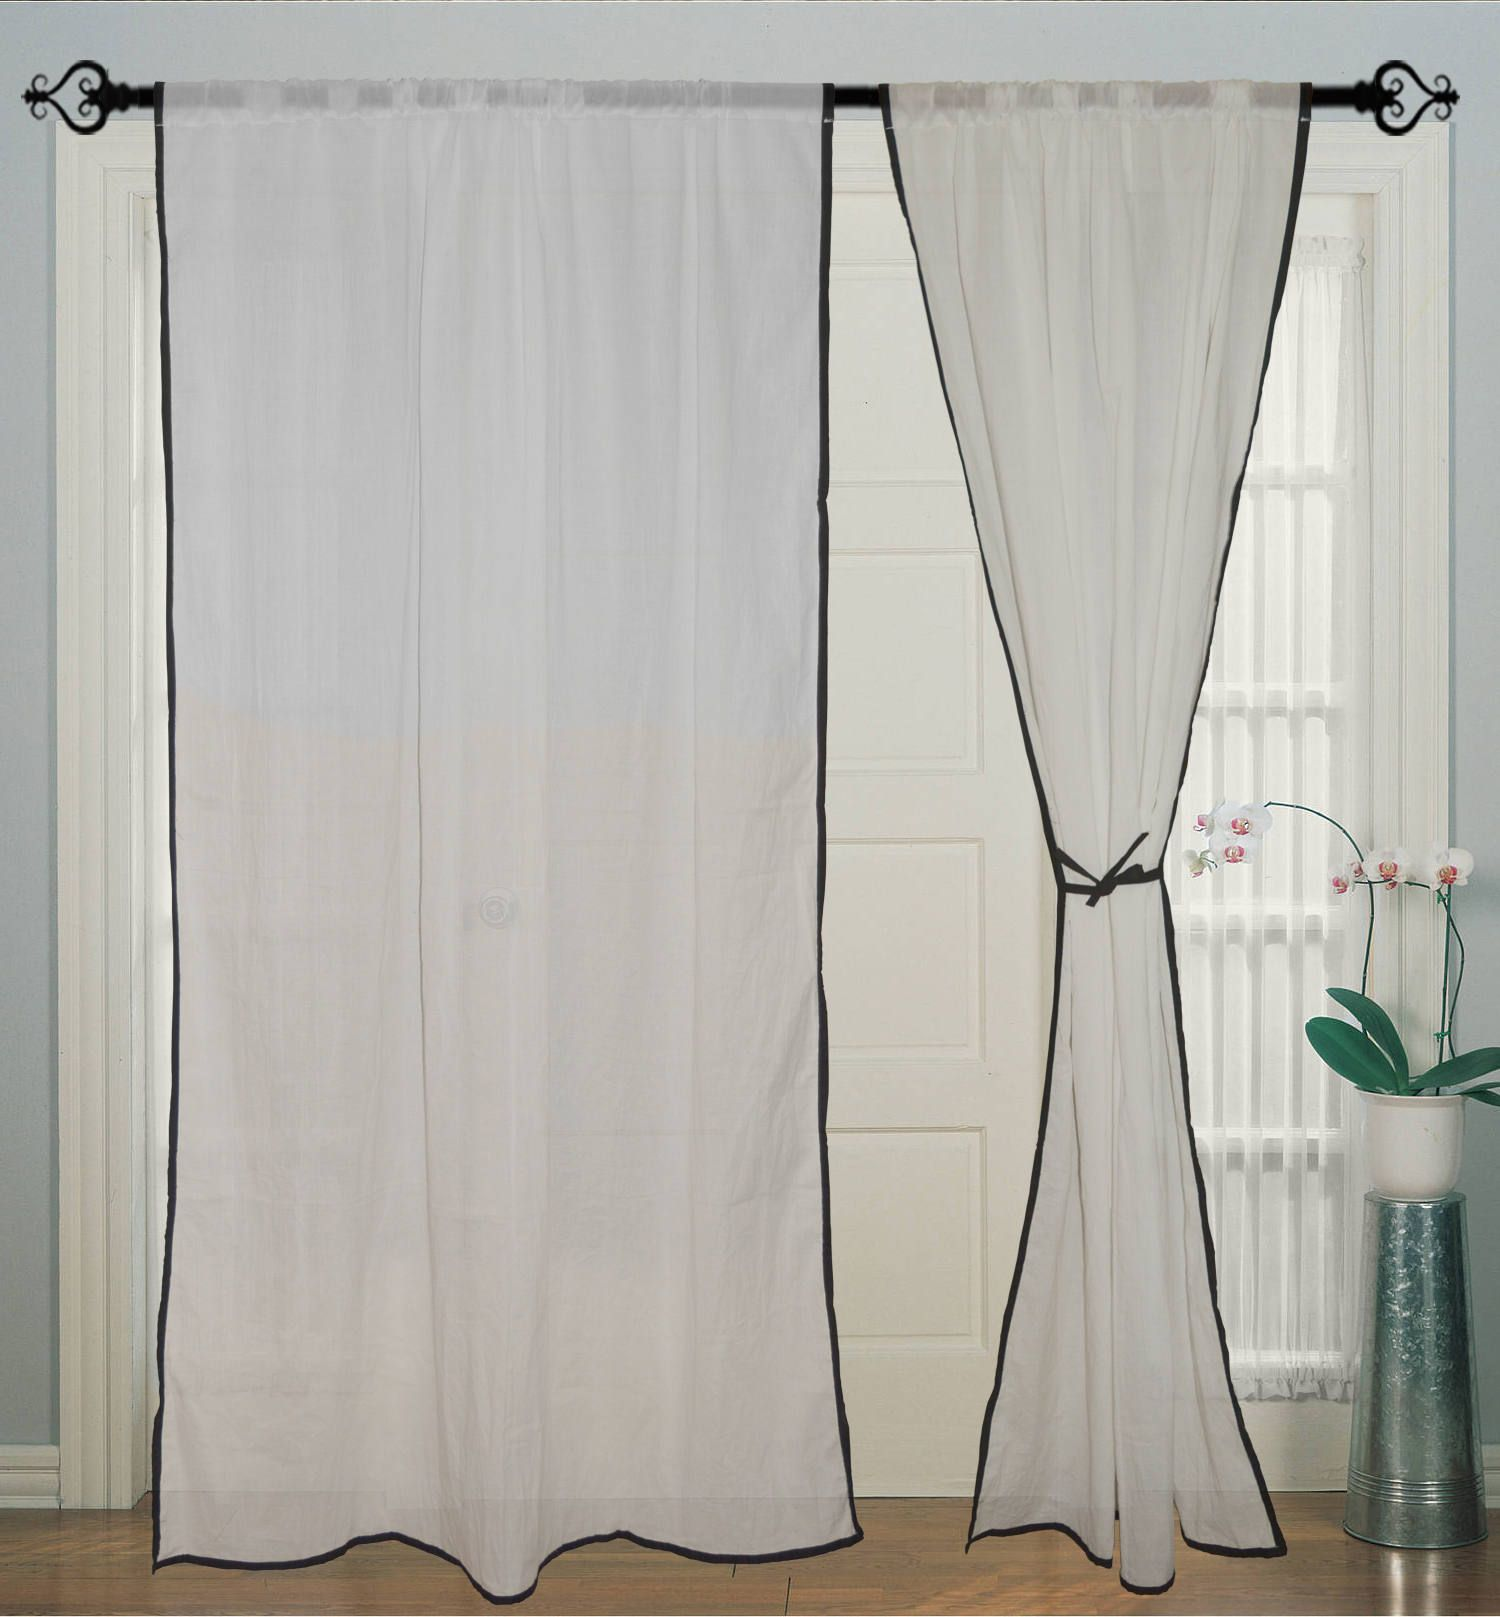 2pcs Cotton Curtain Window Ds Treatment For Doors Indian Fabric Black Border White Curtains By Jagirdar On